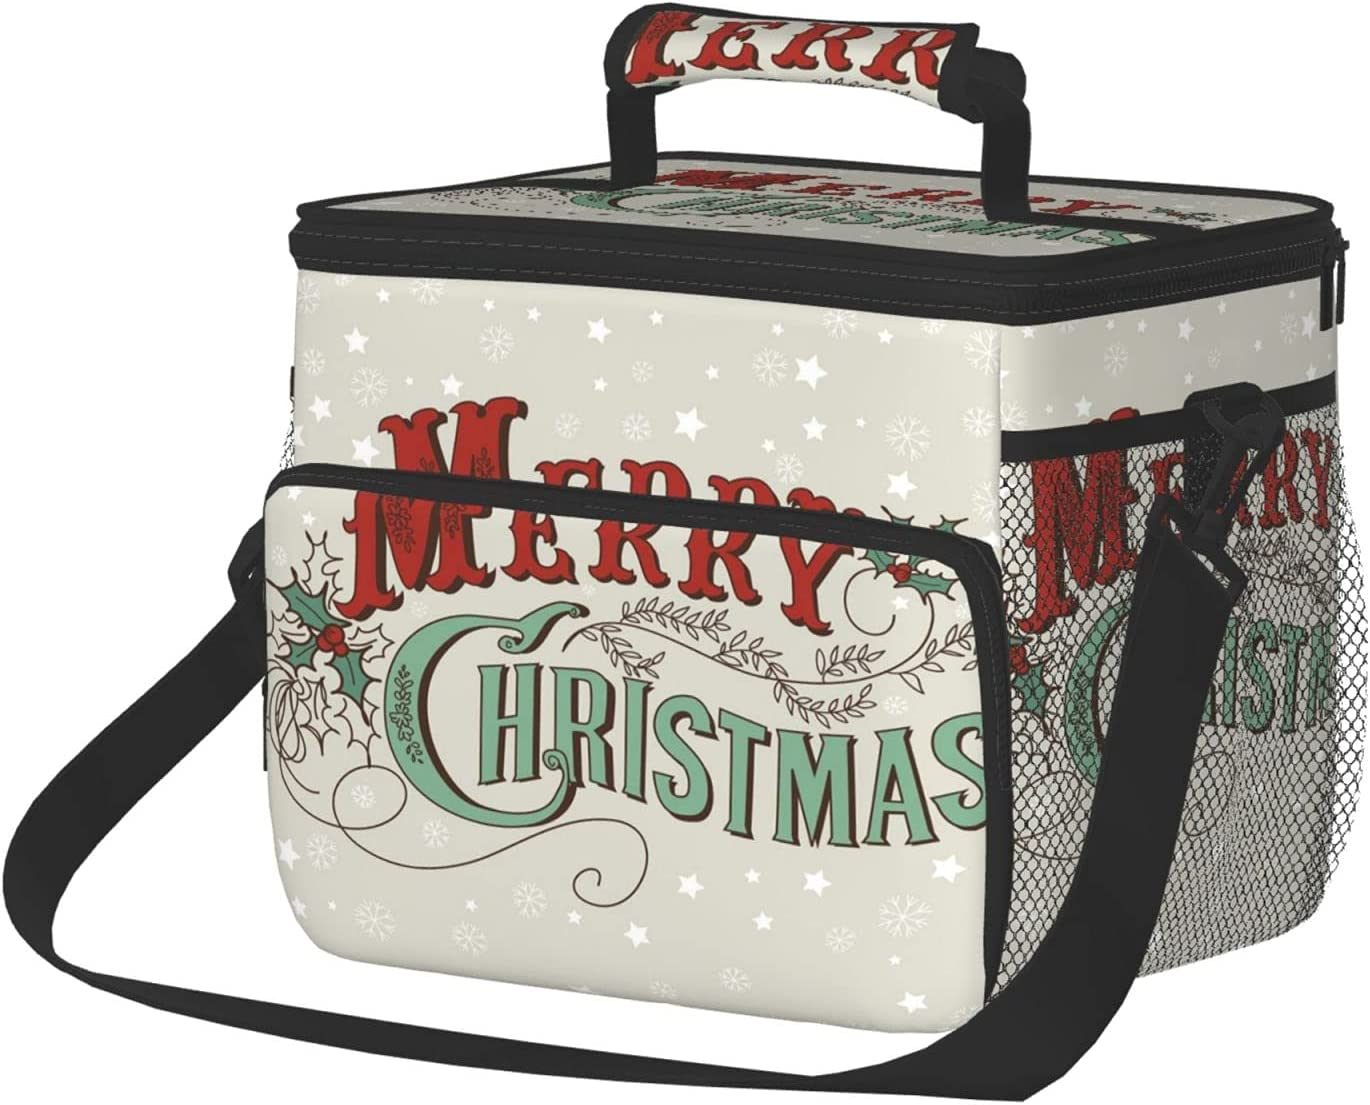 Insulated Lunch Box Reusable Max 55% OFF Tote Brand new Xmas Large Bag Stars